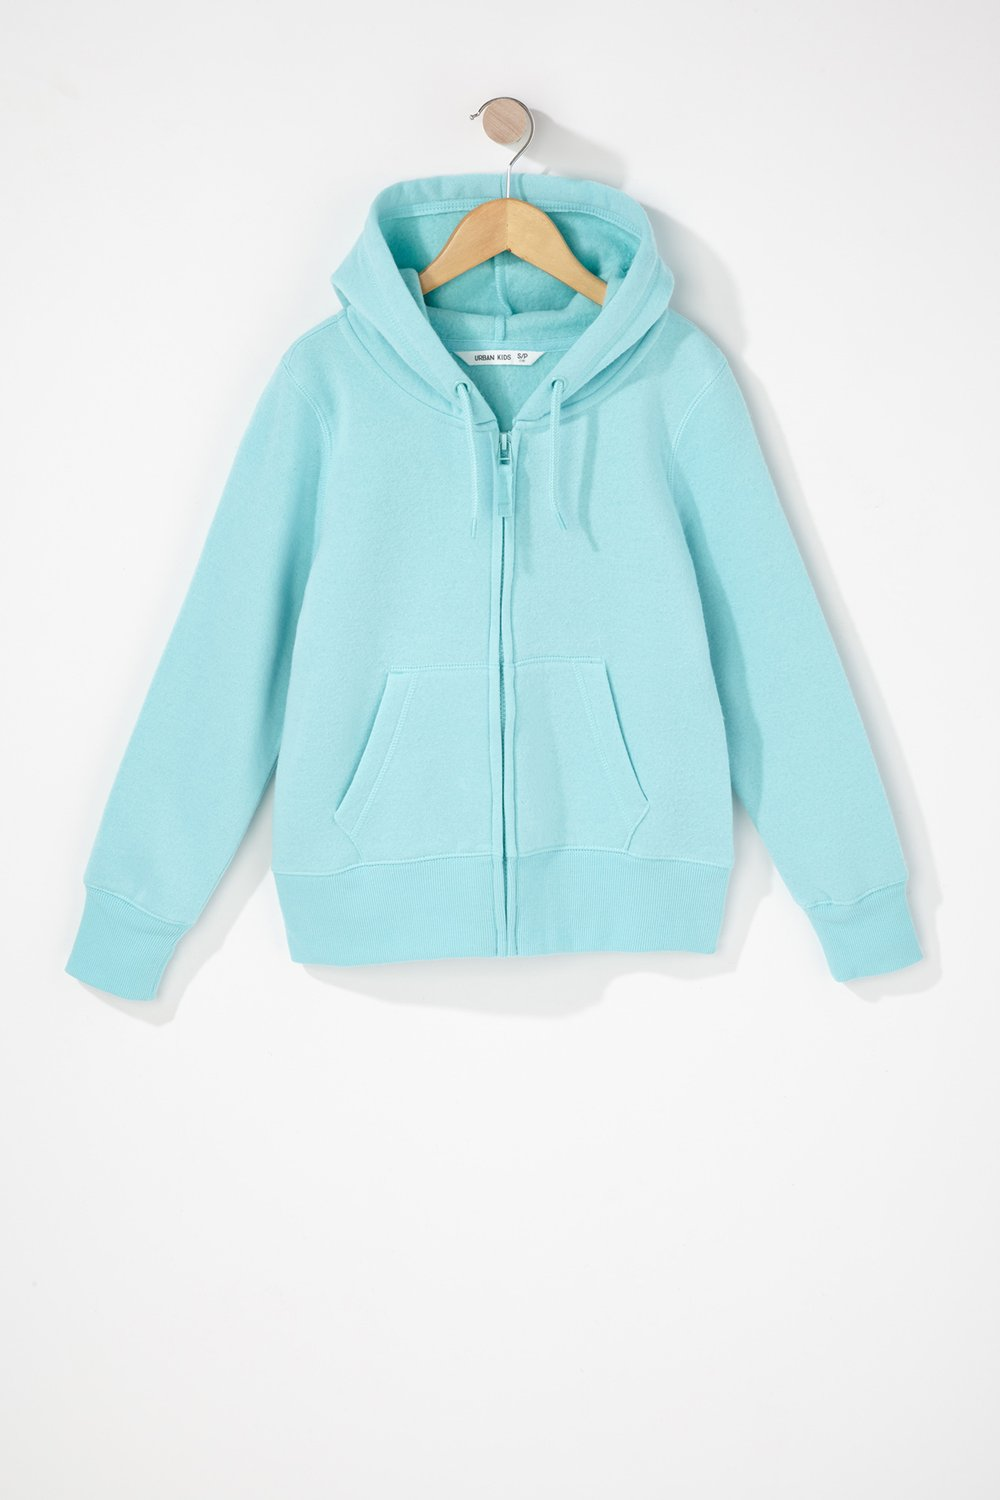 girls drawstring sweatshirt